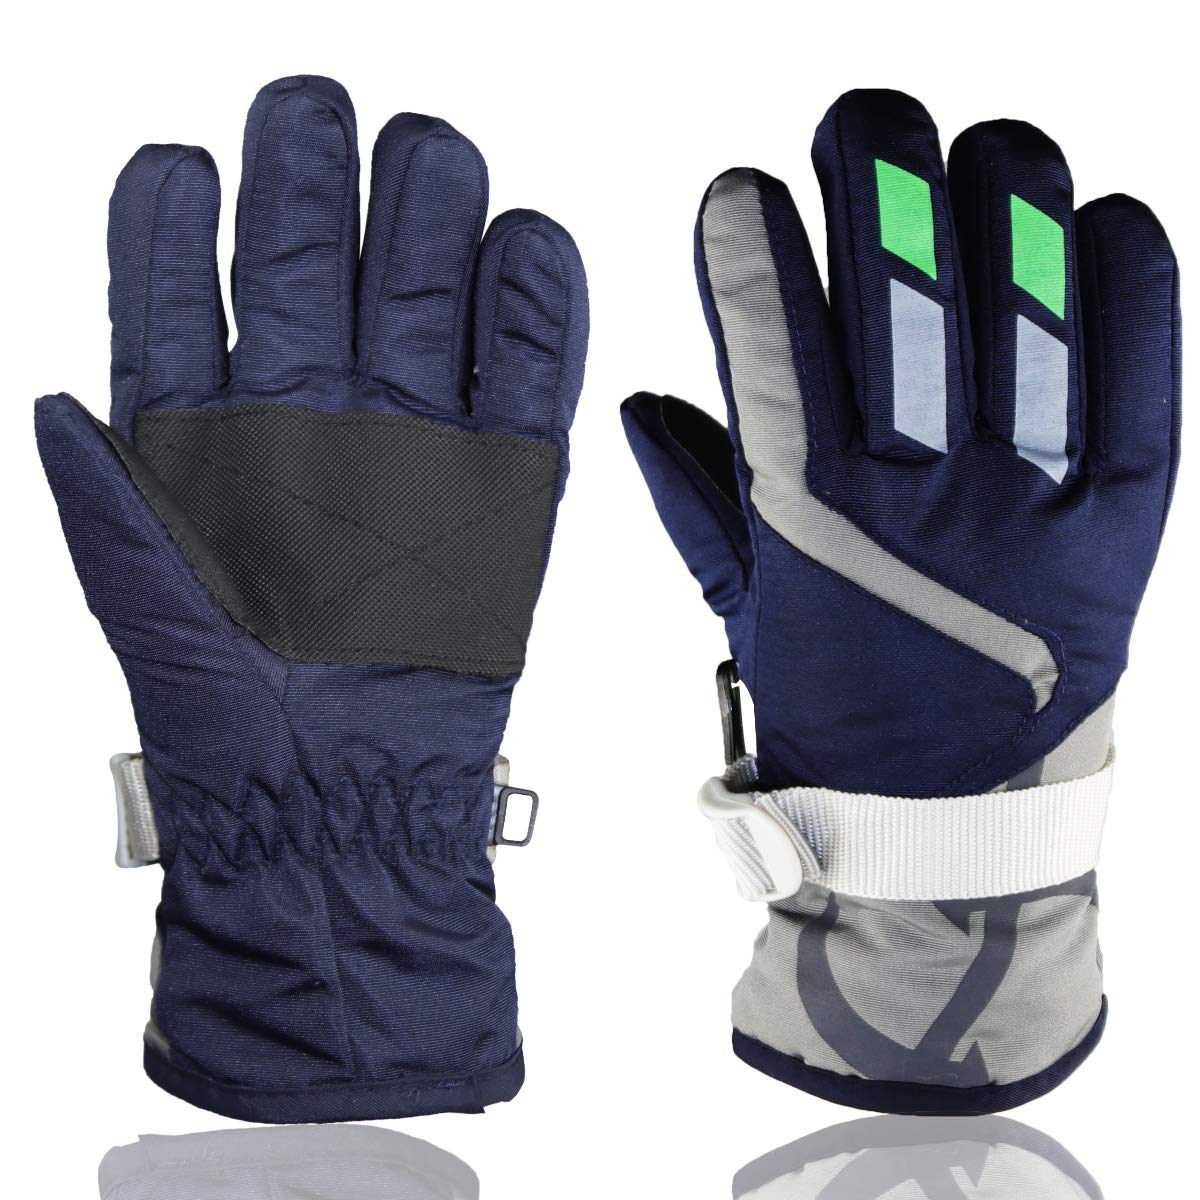 Children Ski Waterproof Gloves Winter Warm Outdoor Riding Thickening Gloves YR.Lover, Navy Blue, One Size